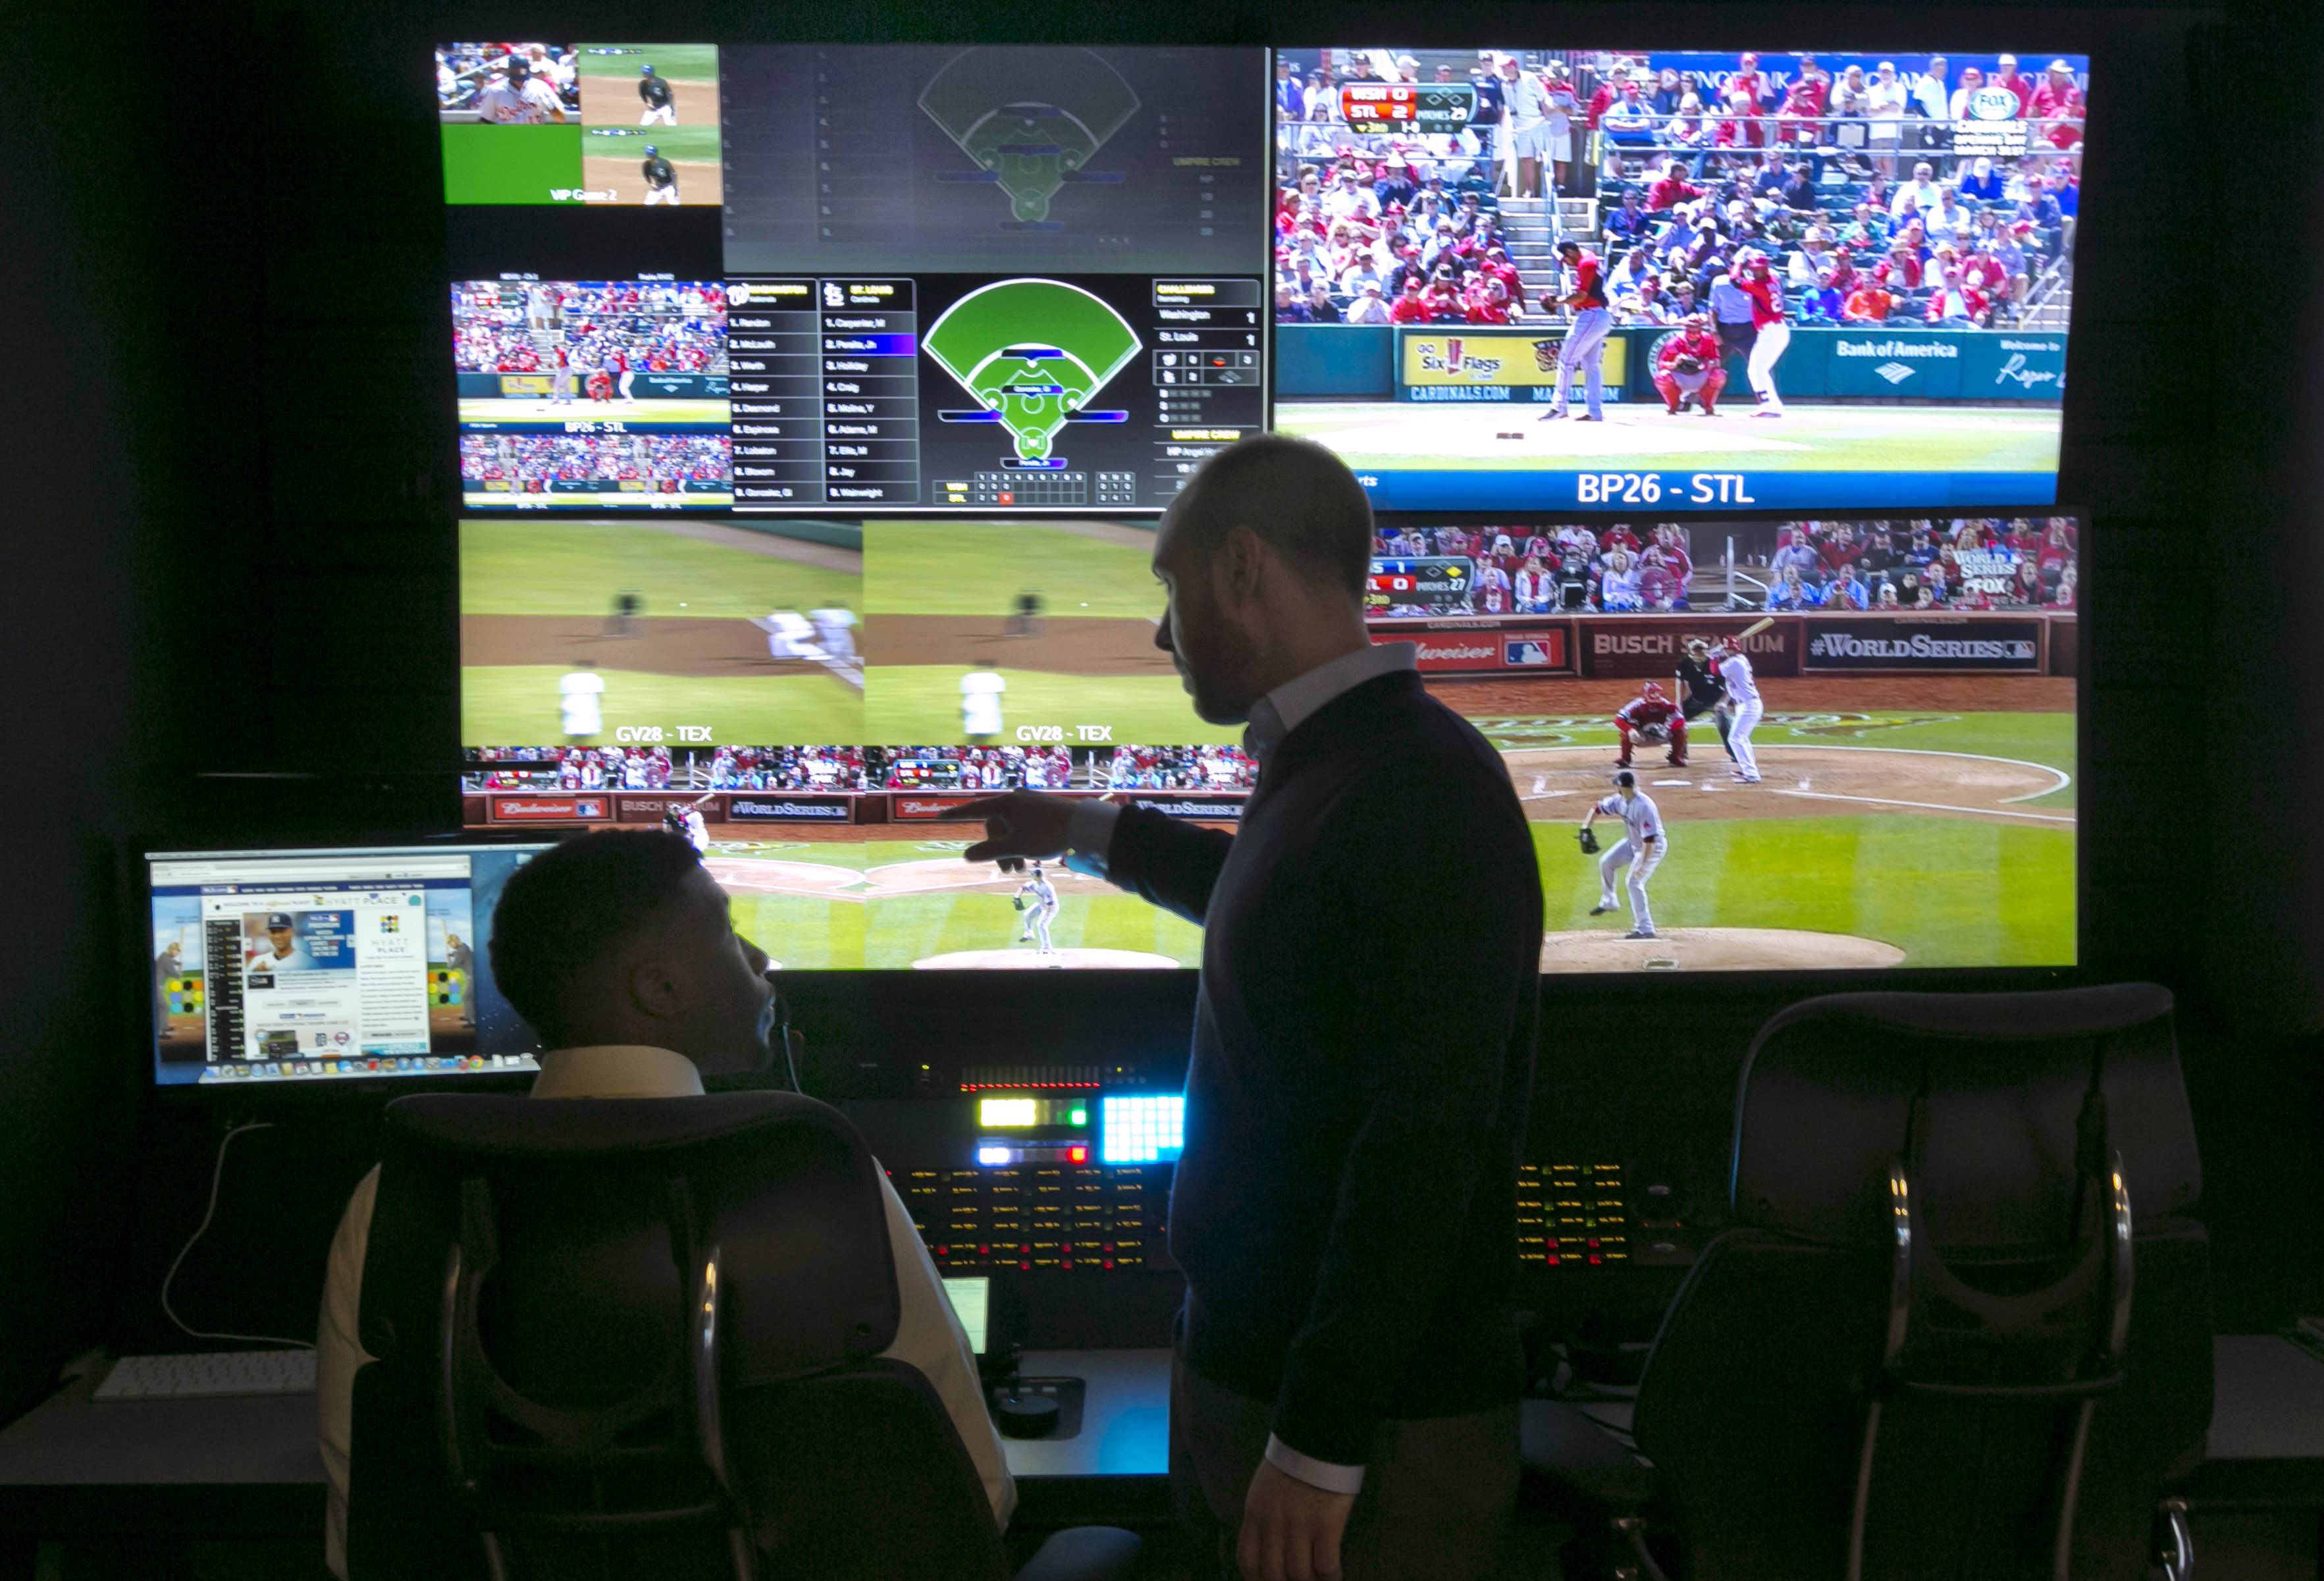 Two technicians work in a booth during a preview of Major League Baseball's Replay Operations Center, in New York, Wednesday, March 26, 2014. Less than a week before most teams open, MLB is working on the unveiling of its new instant replay system, which it hopes will vastly reduce incorrect calls by umpires.